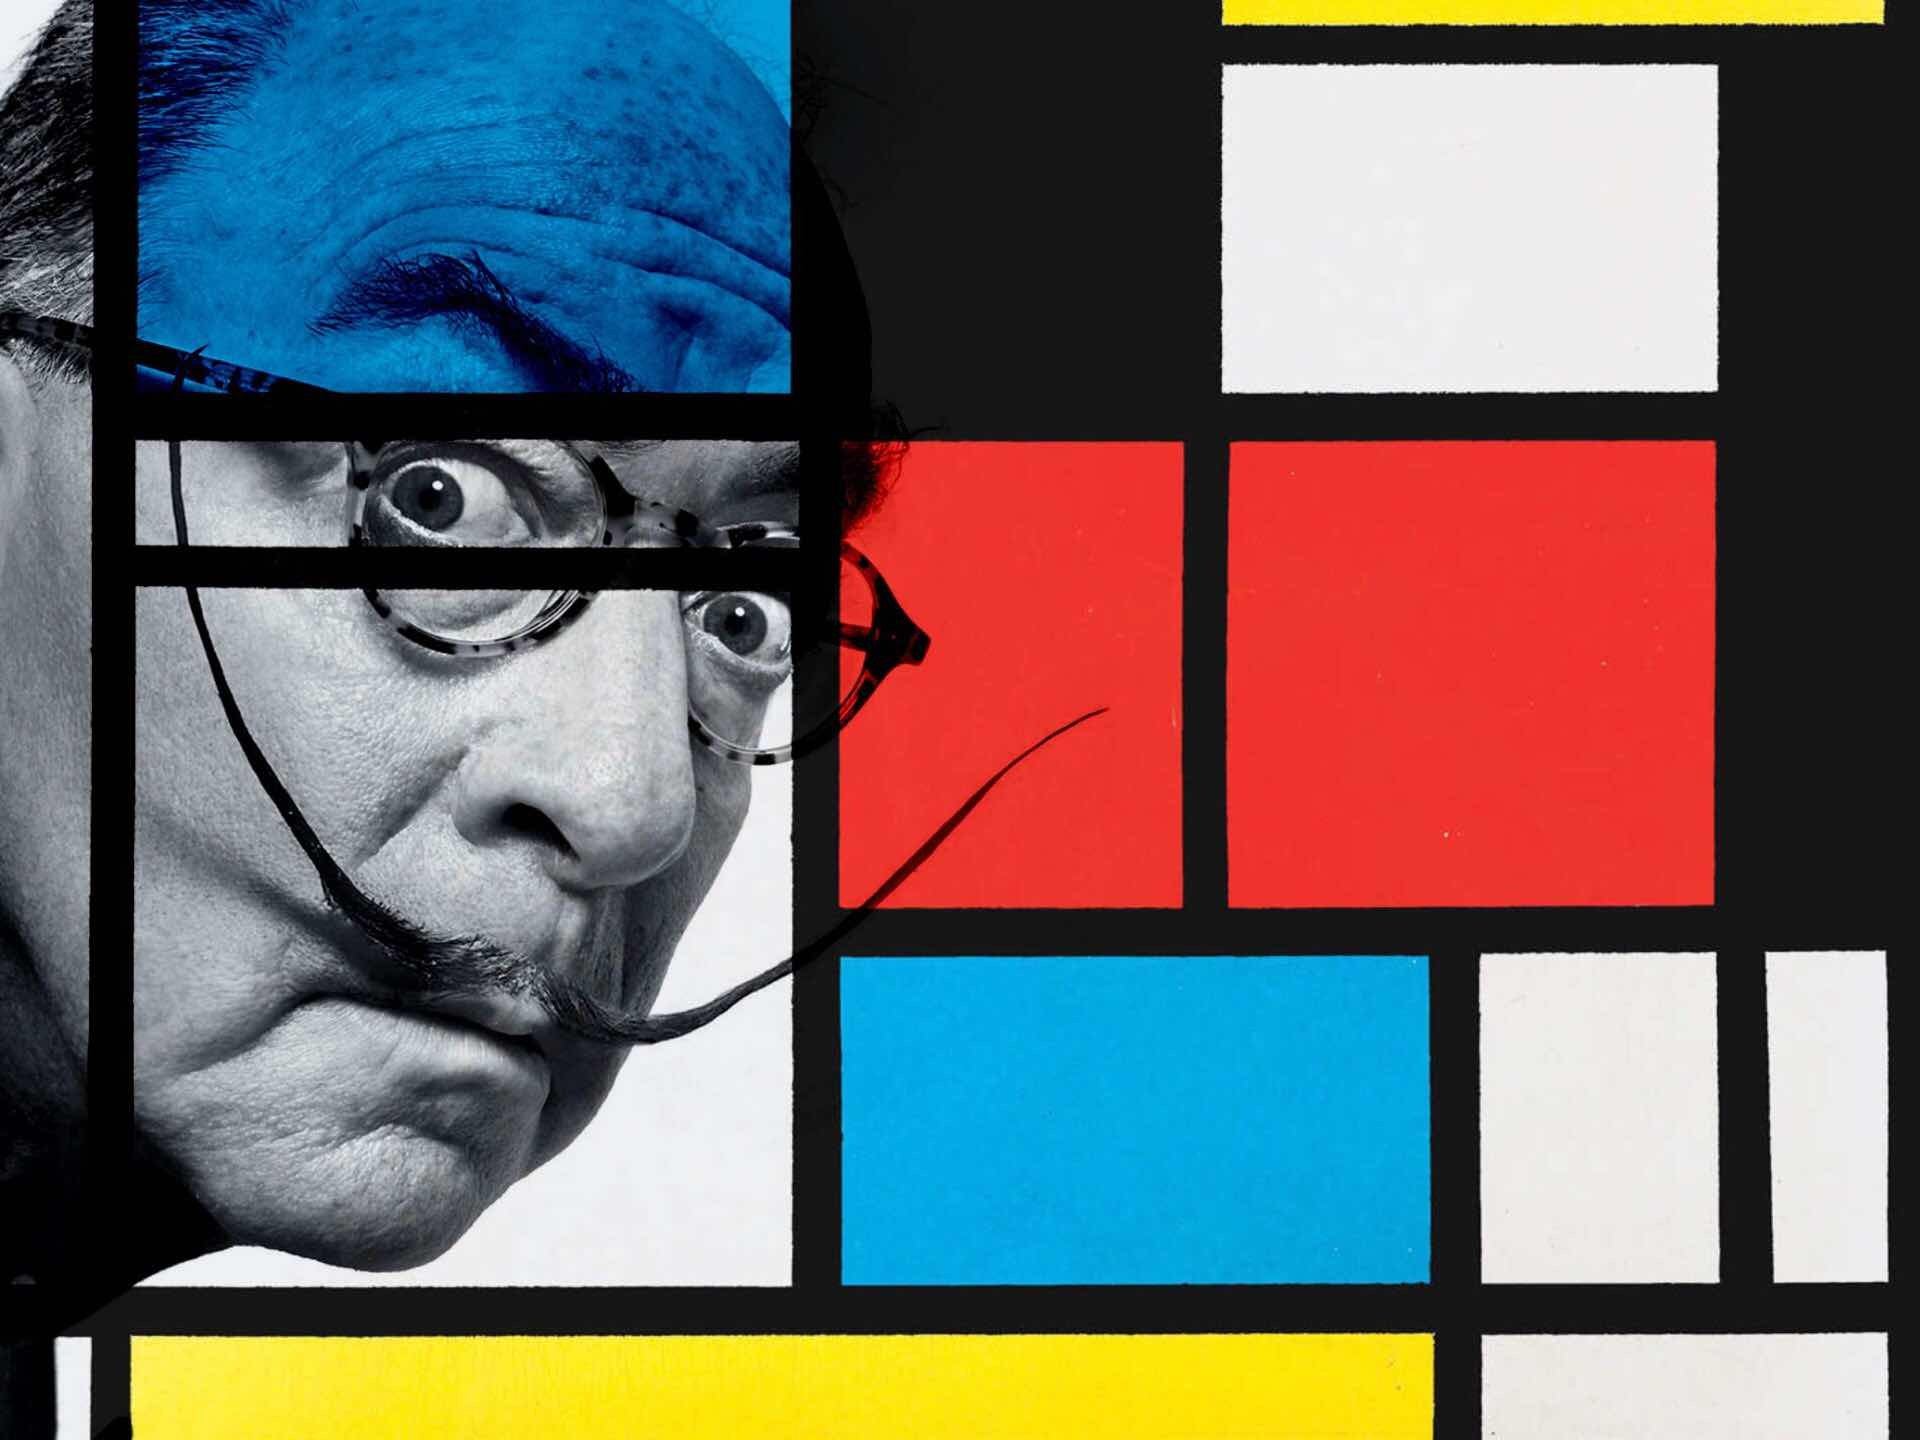 Background photo by Marvin Orellana for Vulture, with Piet Mondrian's geometric artwork overlaid by yours truly.